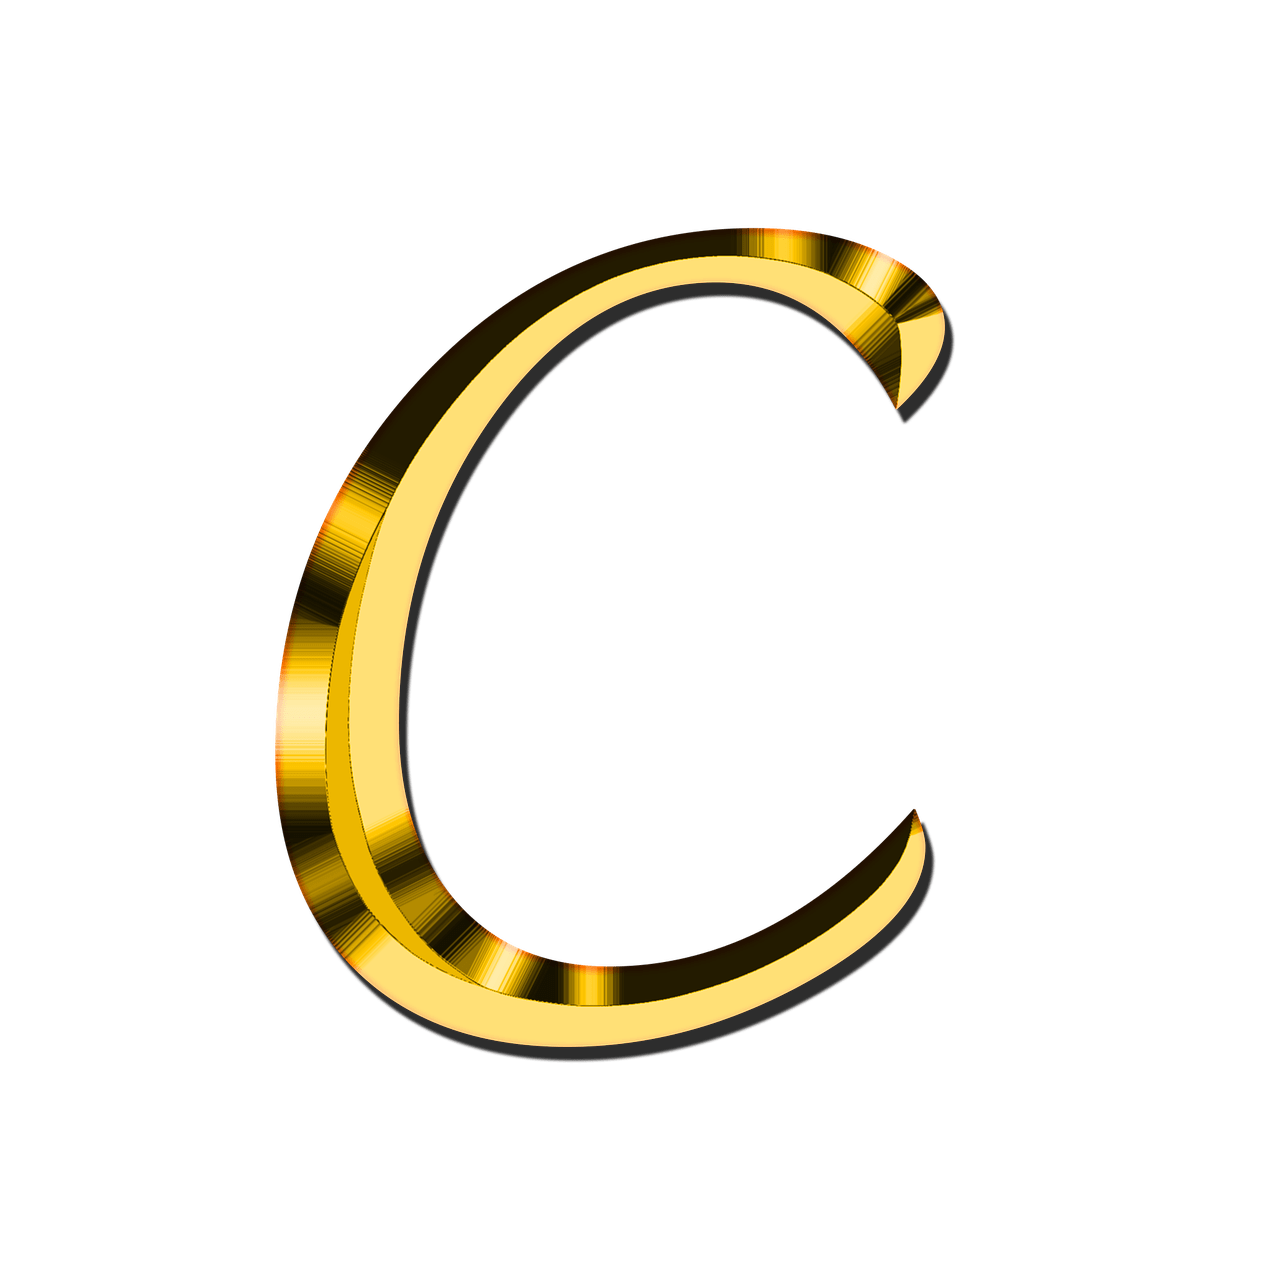 Capital Letter C transparent PNG - StickPNG